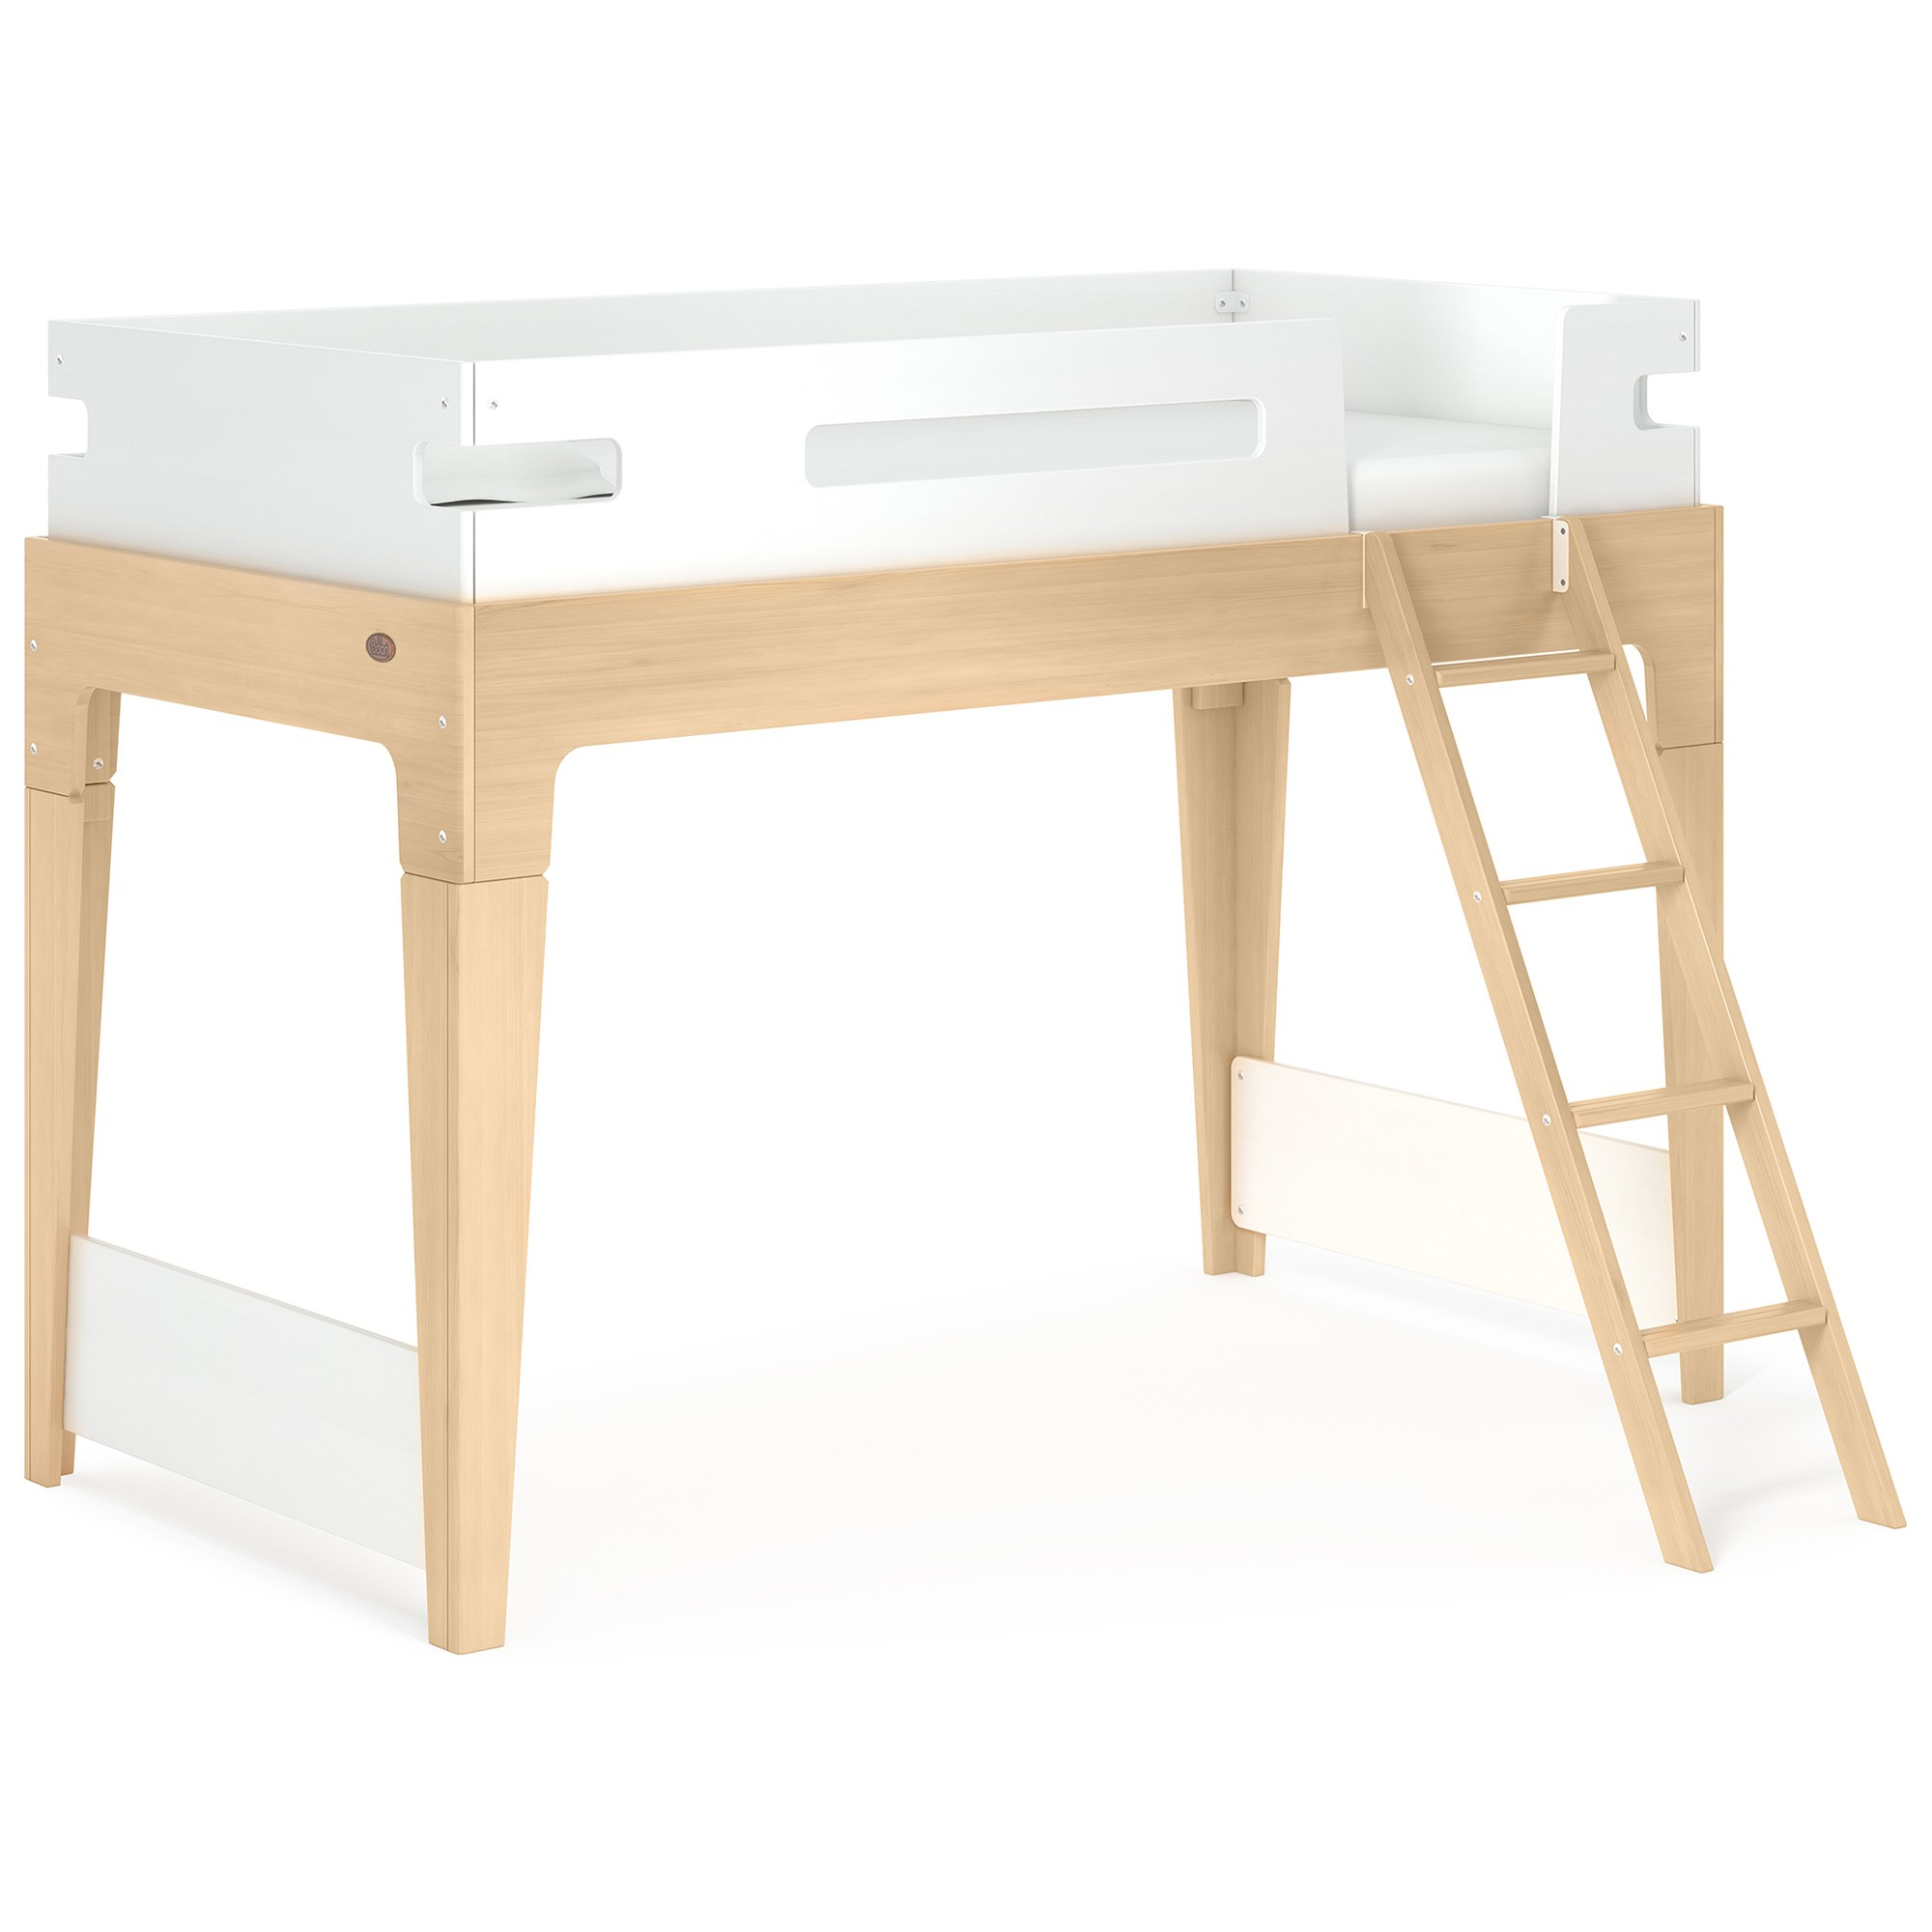 Boori Tidy Wooden Loft Bed, Single, Barley White / Almond